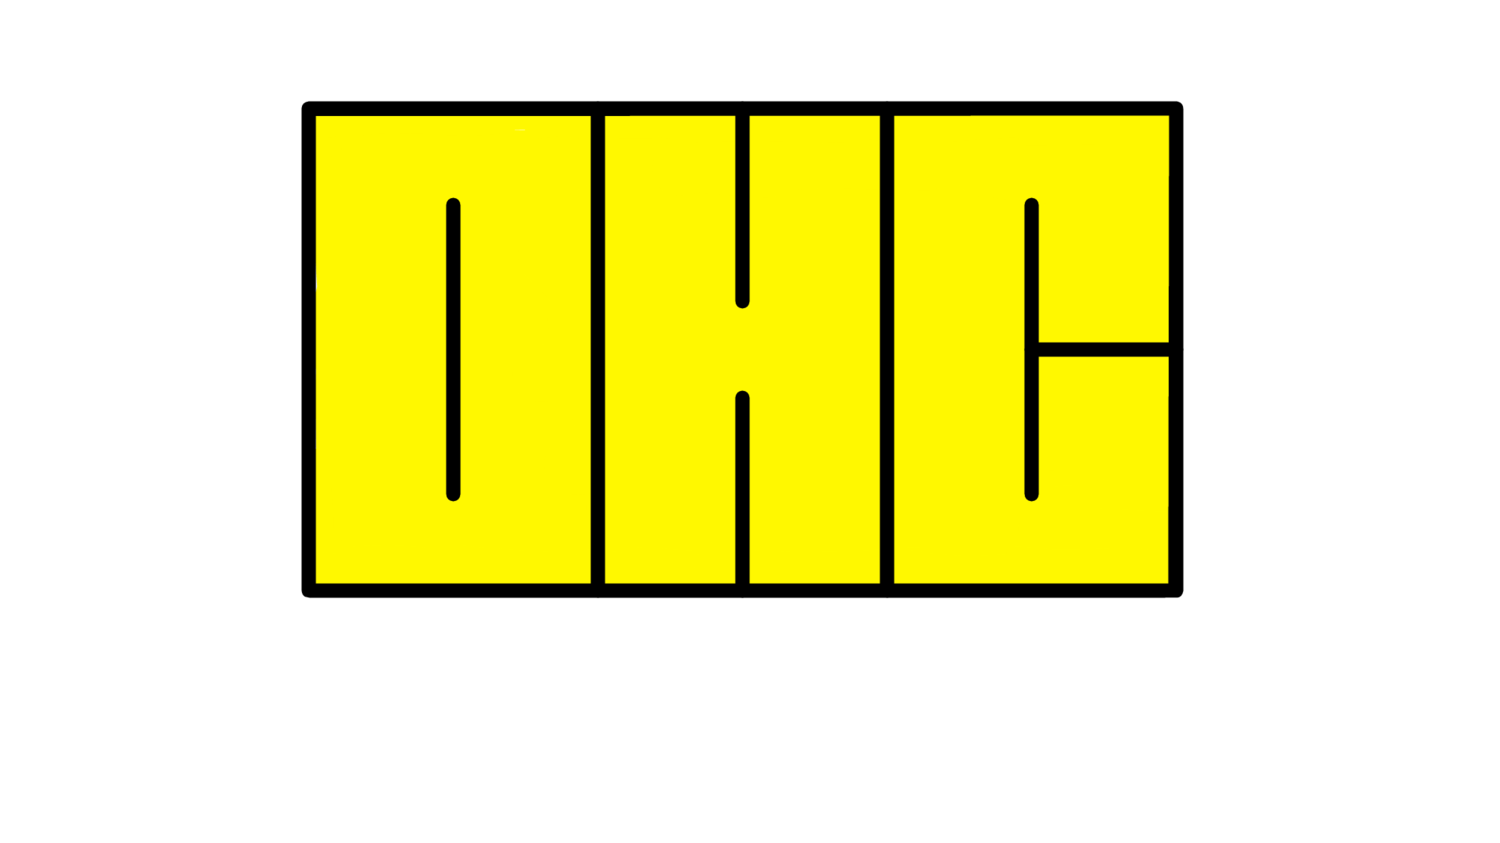 Other Hand Comics